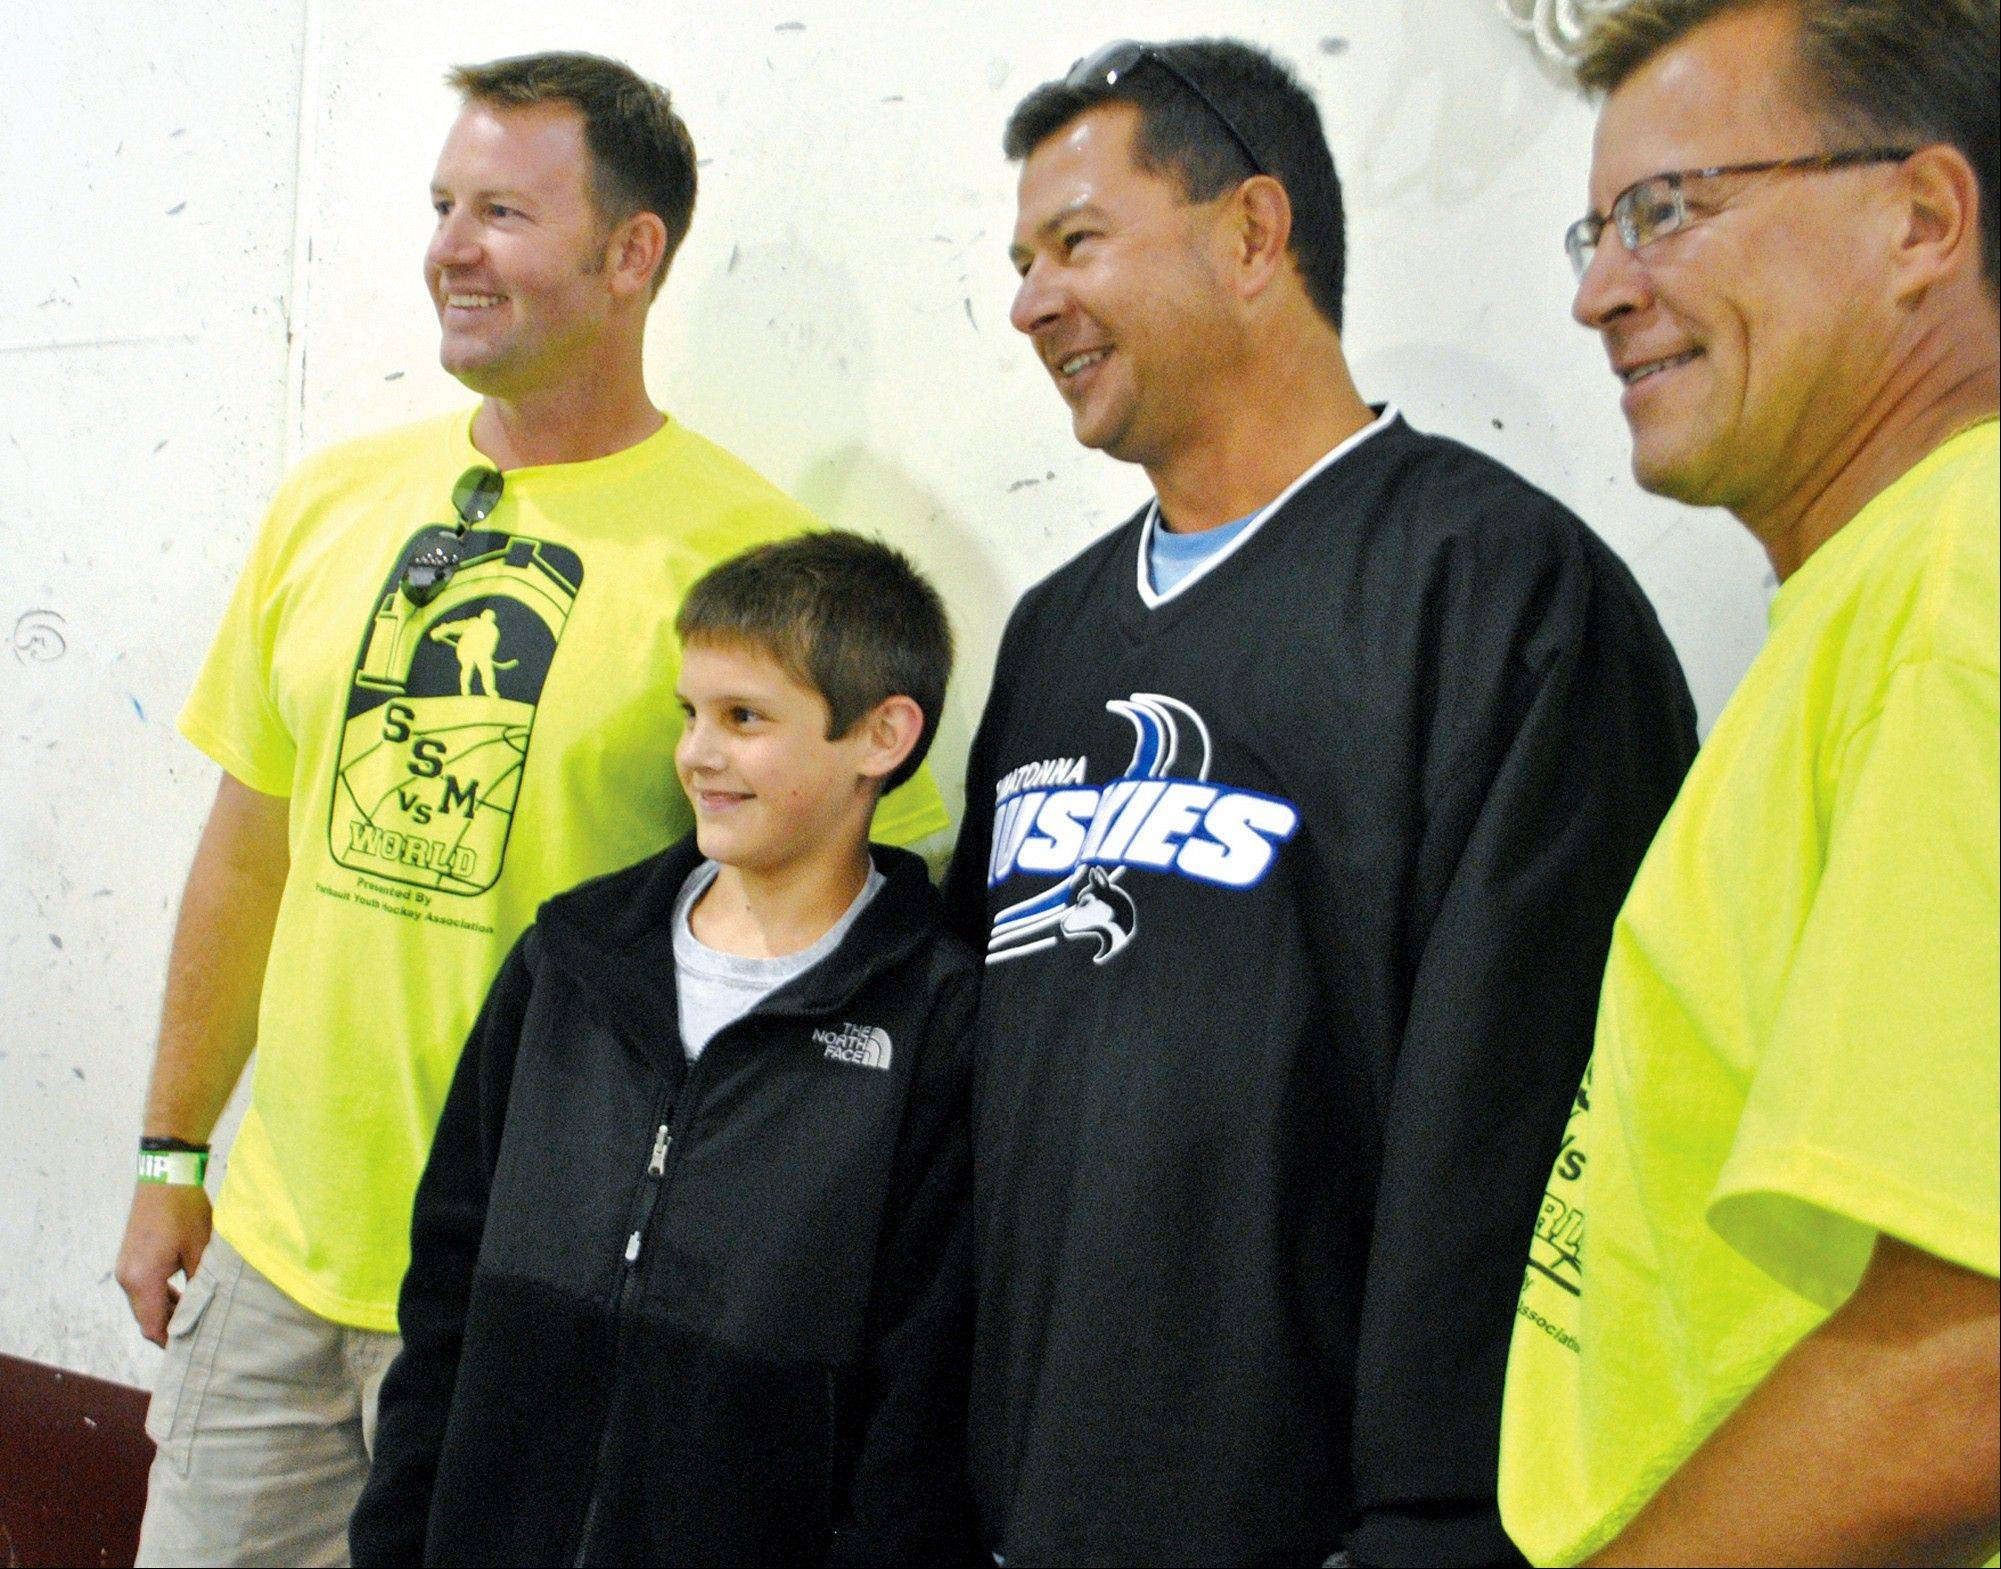 Nate Smith and his dad Pat Smith, second from right, pose for a photo after the 11-year-old sank a trick shot Thursday during a charity hockey game.